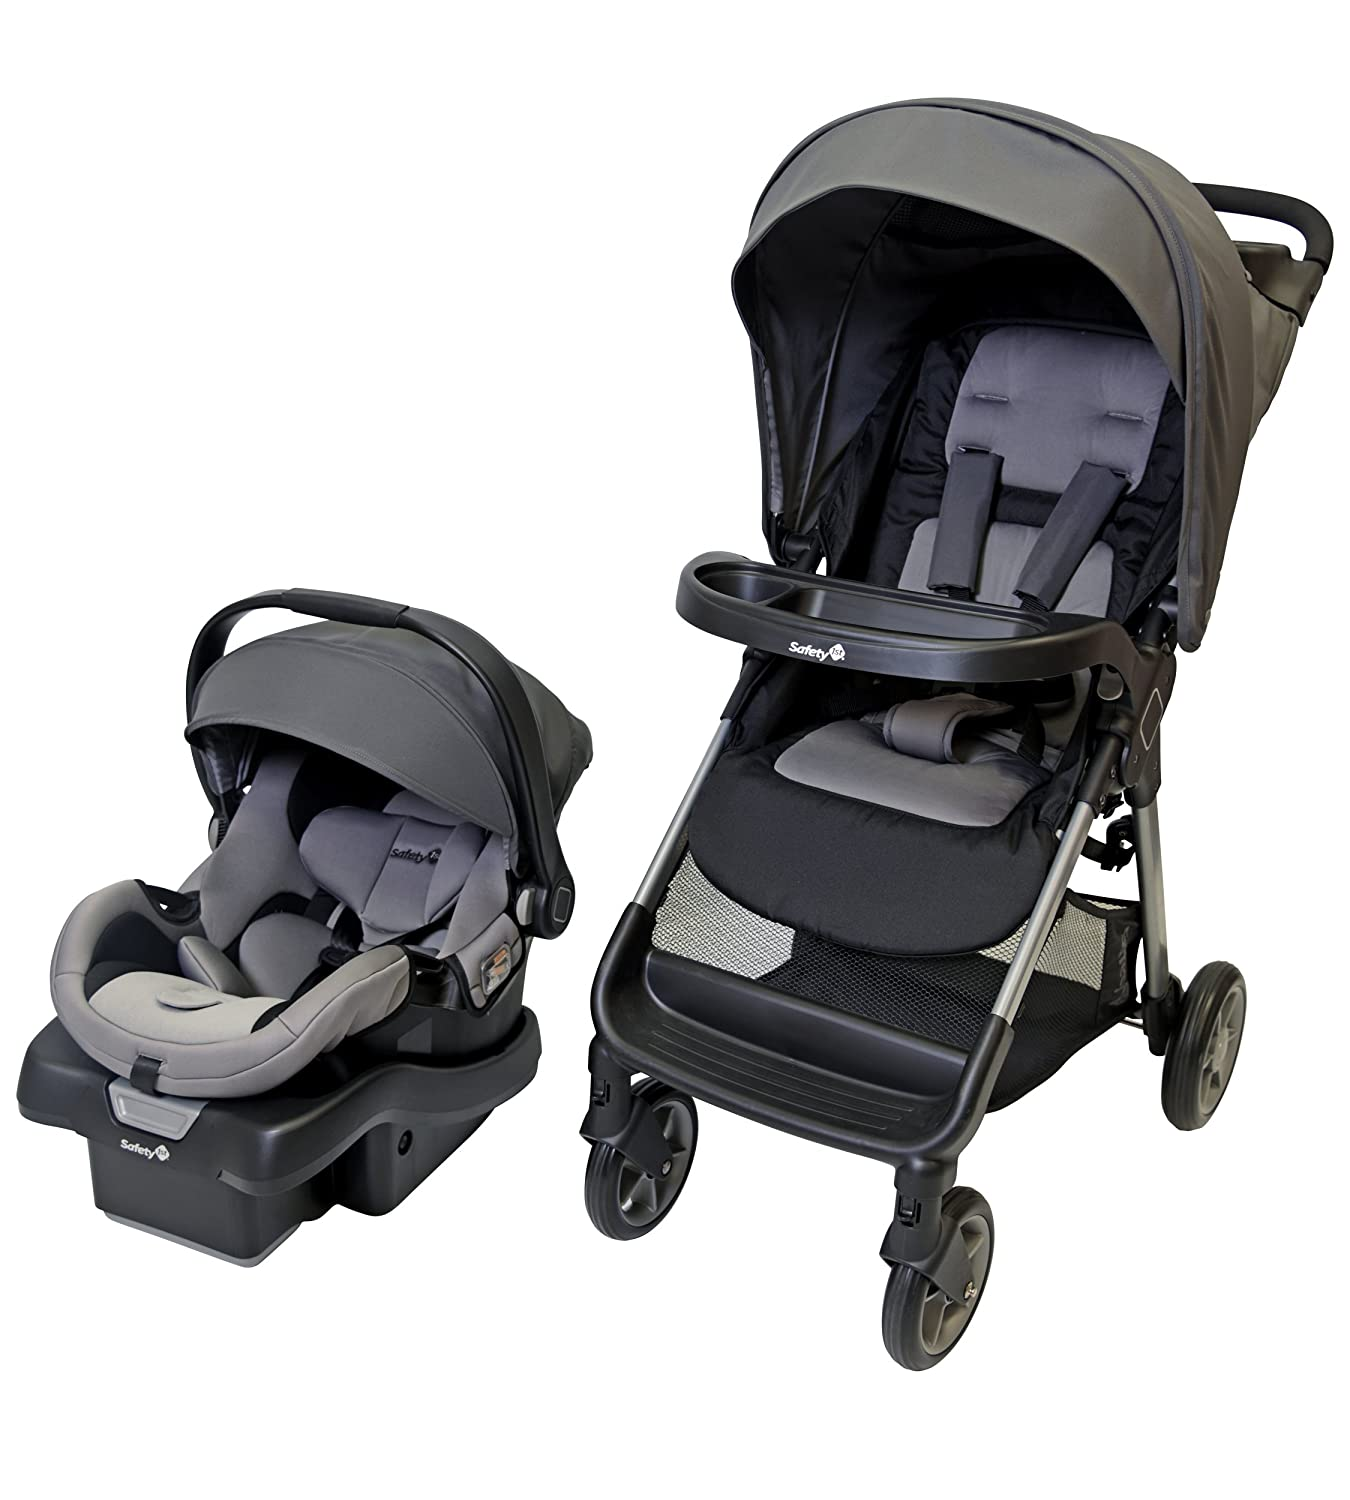 Safety 1st Smooth Ride LX Travel System- Monument Dorel Juvenile 01292CEEL